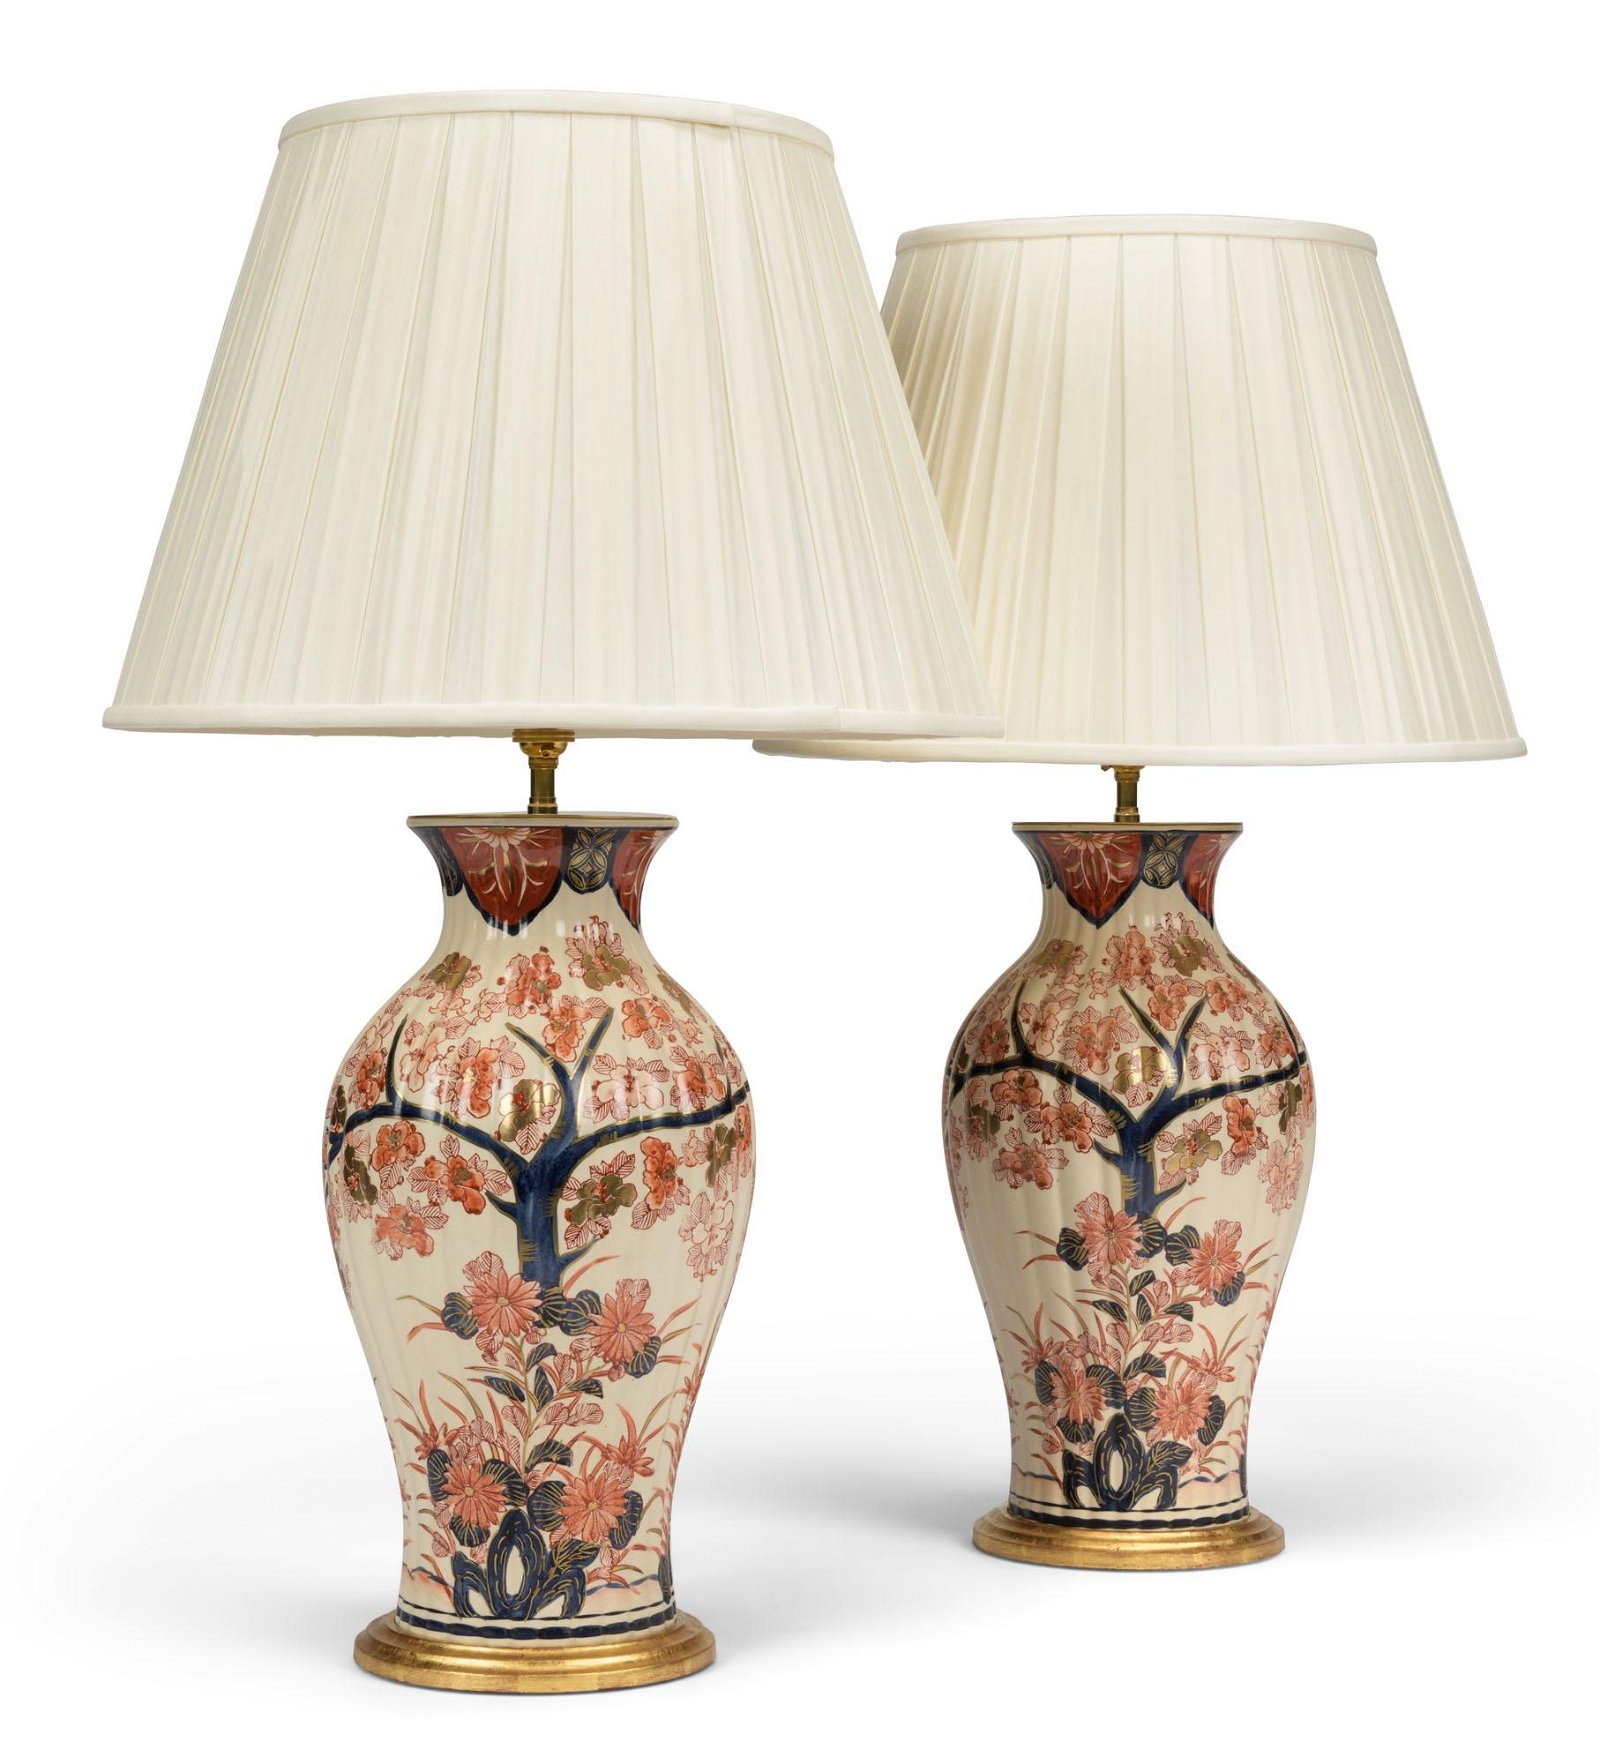 A PAIR OF IMARI-STYLE PORCELAIN VASES, MOUNTED AS LAMPS